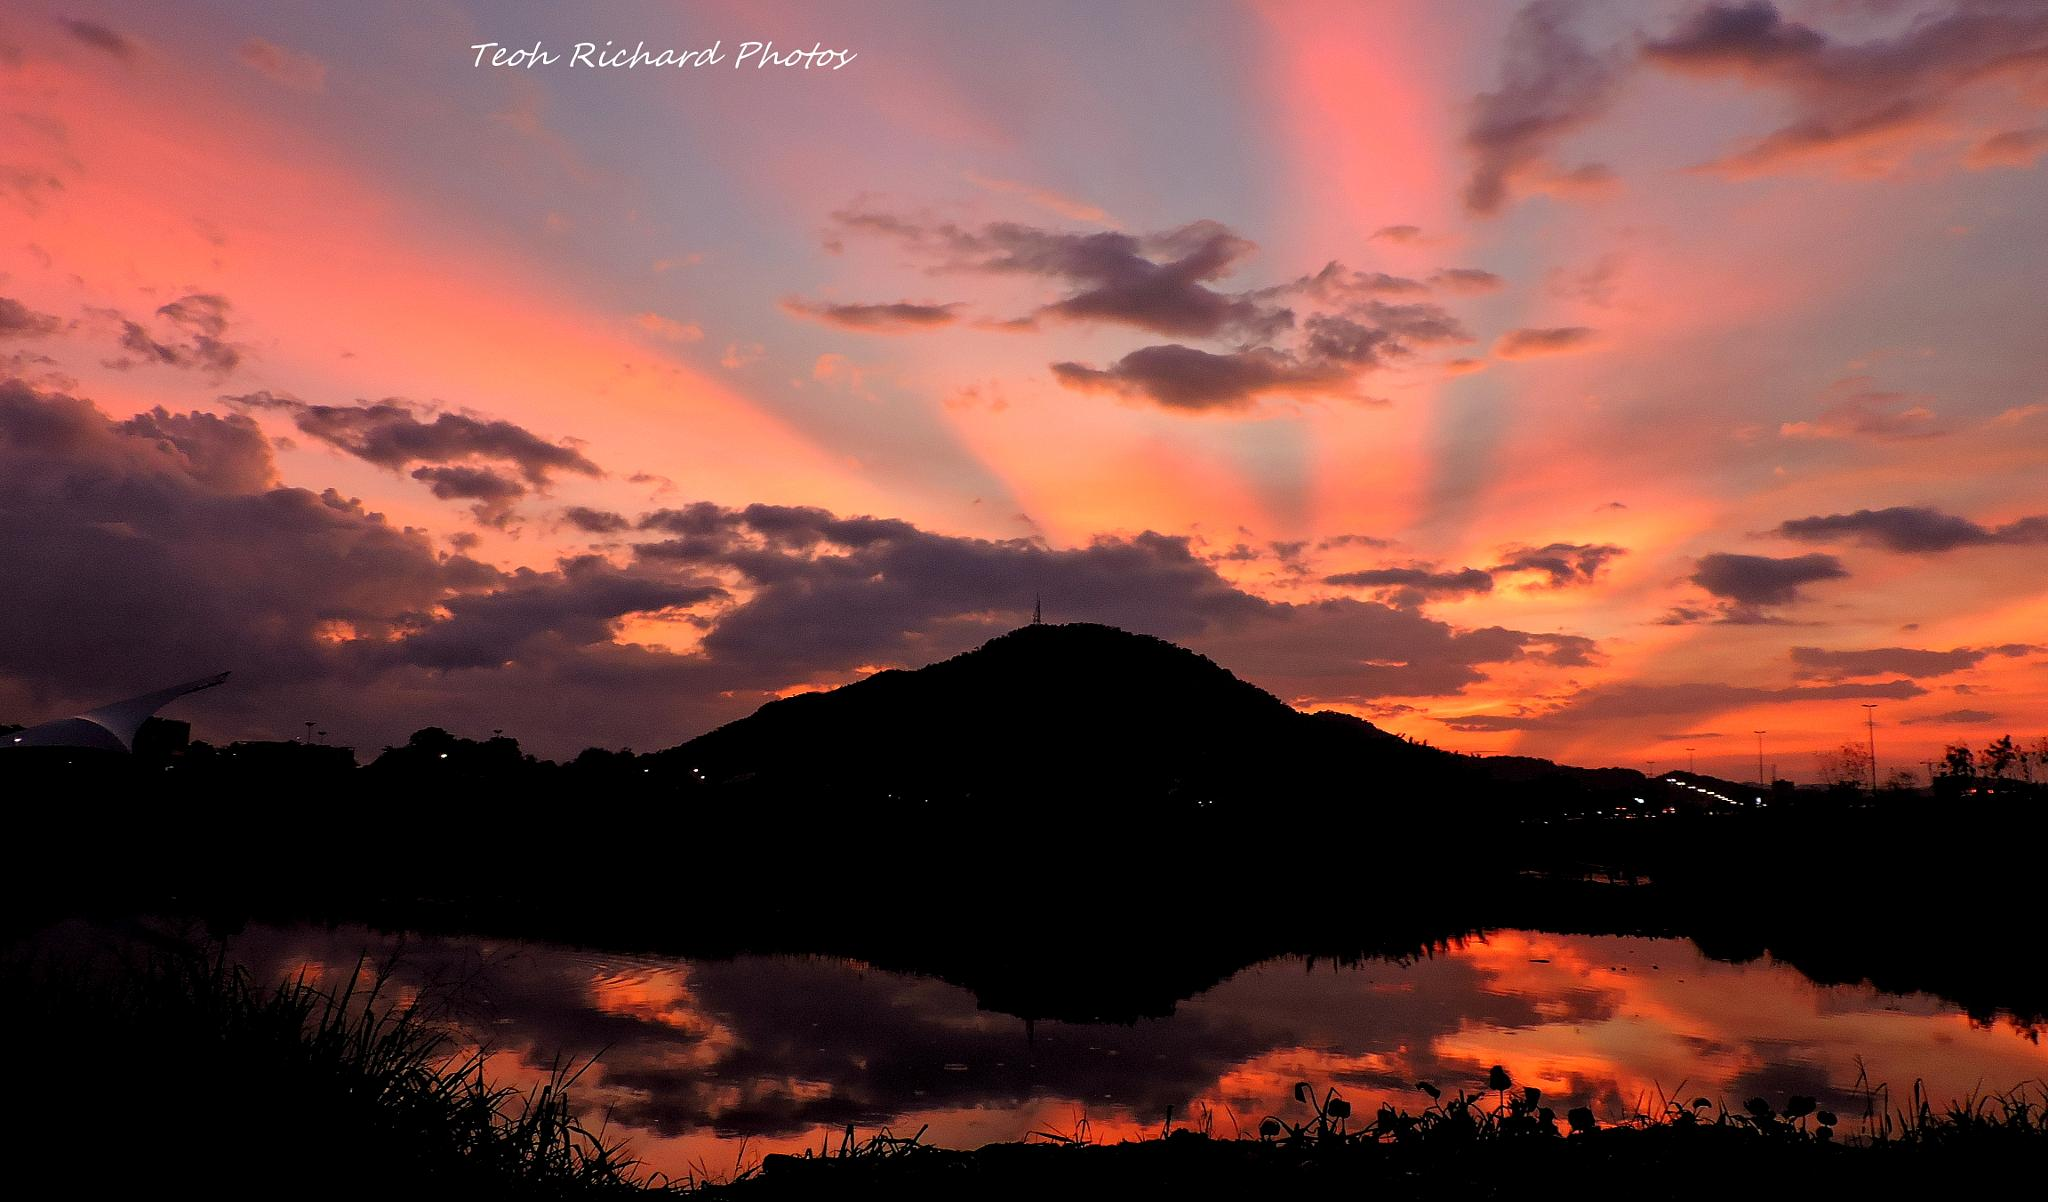 Sunrise Glow in Reflections by teoh.richard.15